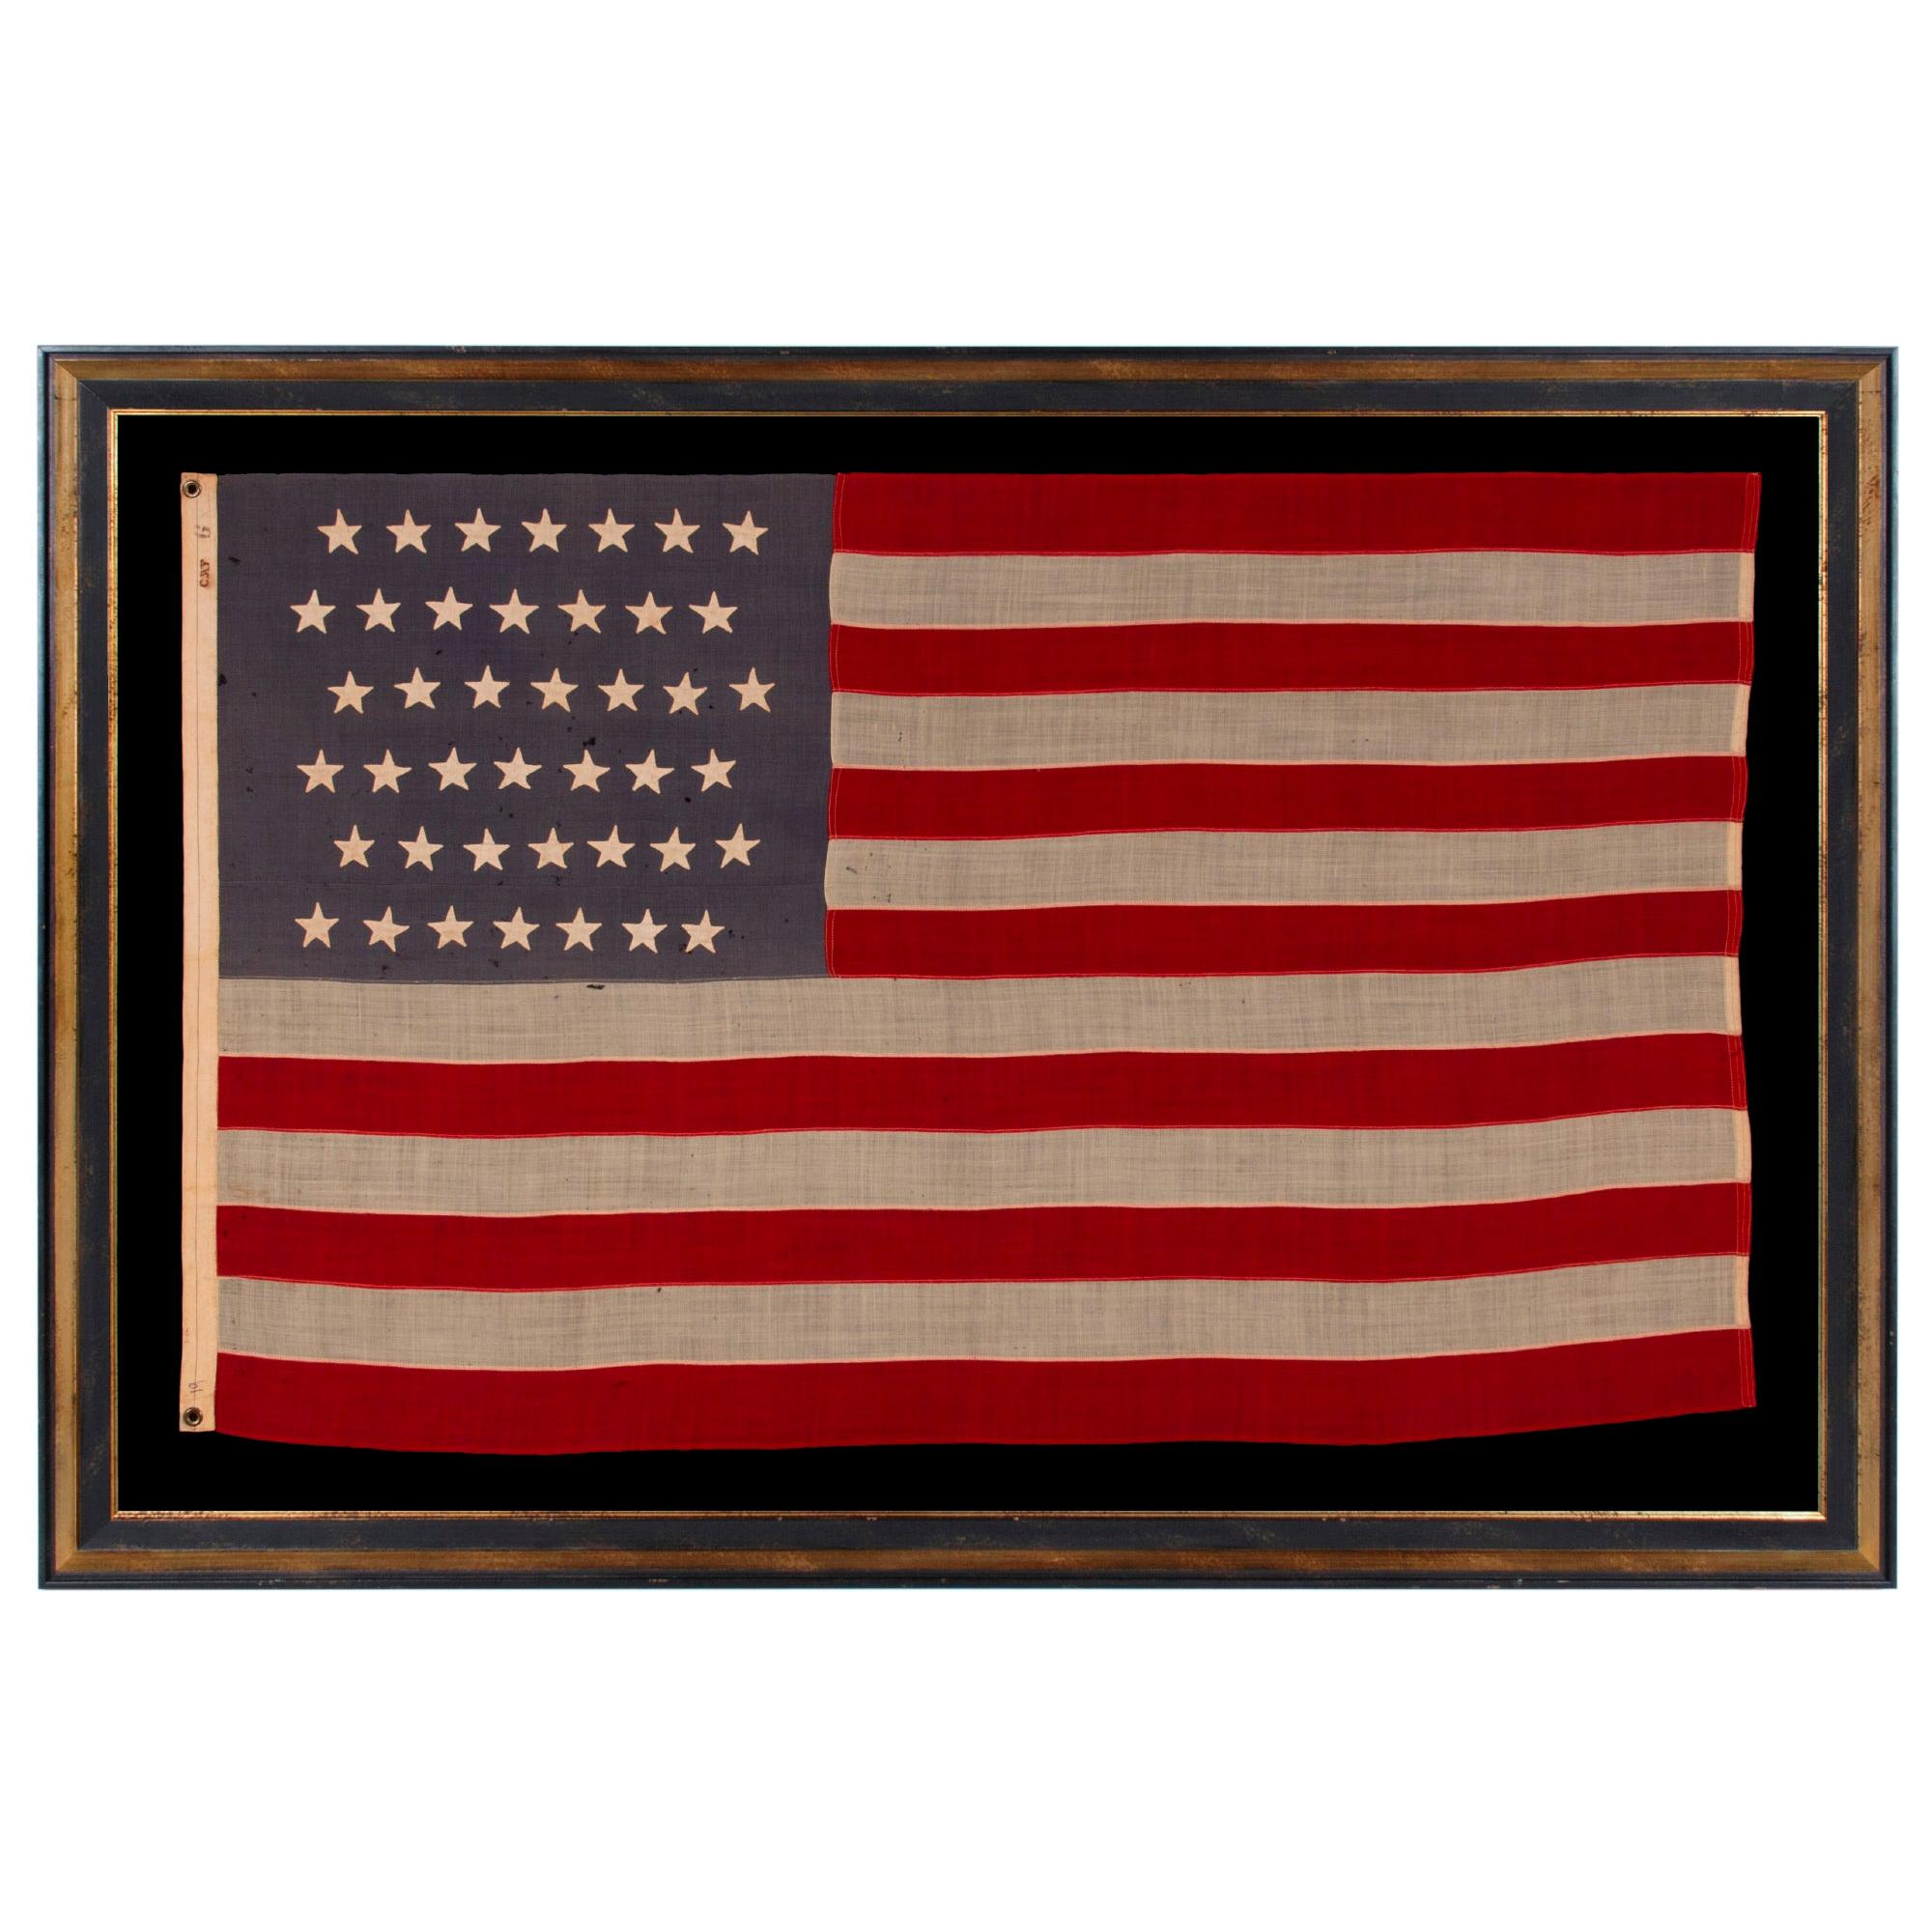 42 Hand-Sewn Stars on An Antique Washington State American Flag, ca 1889-1890